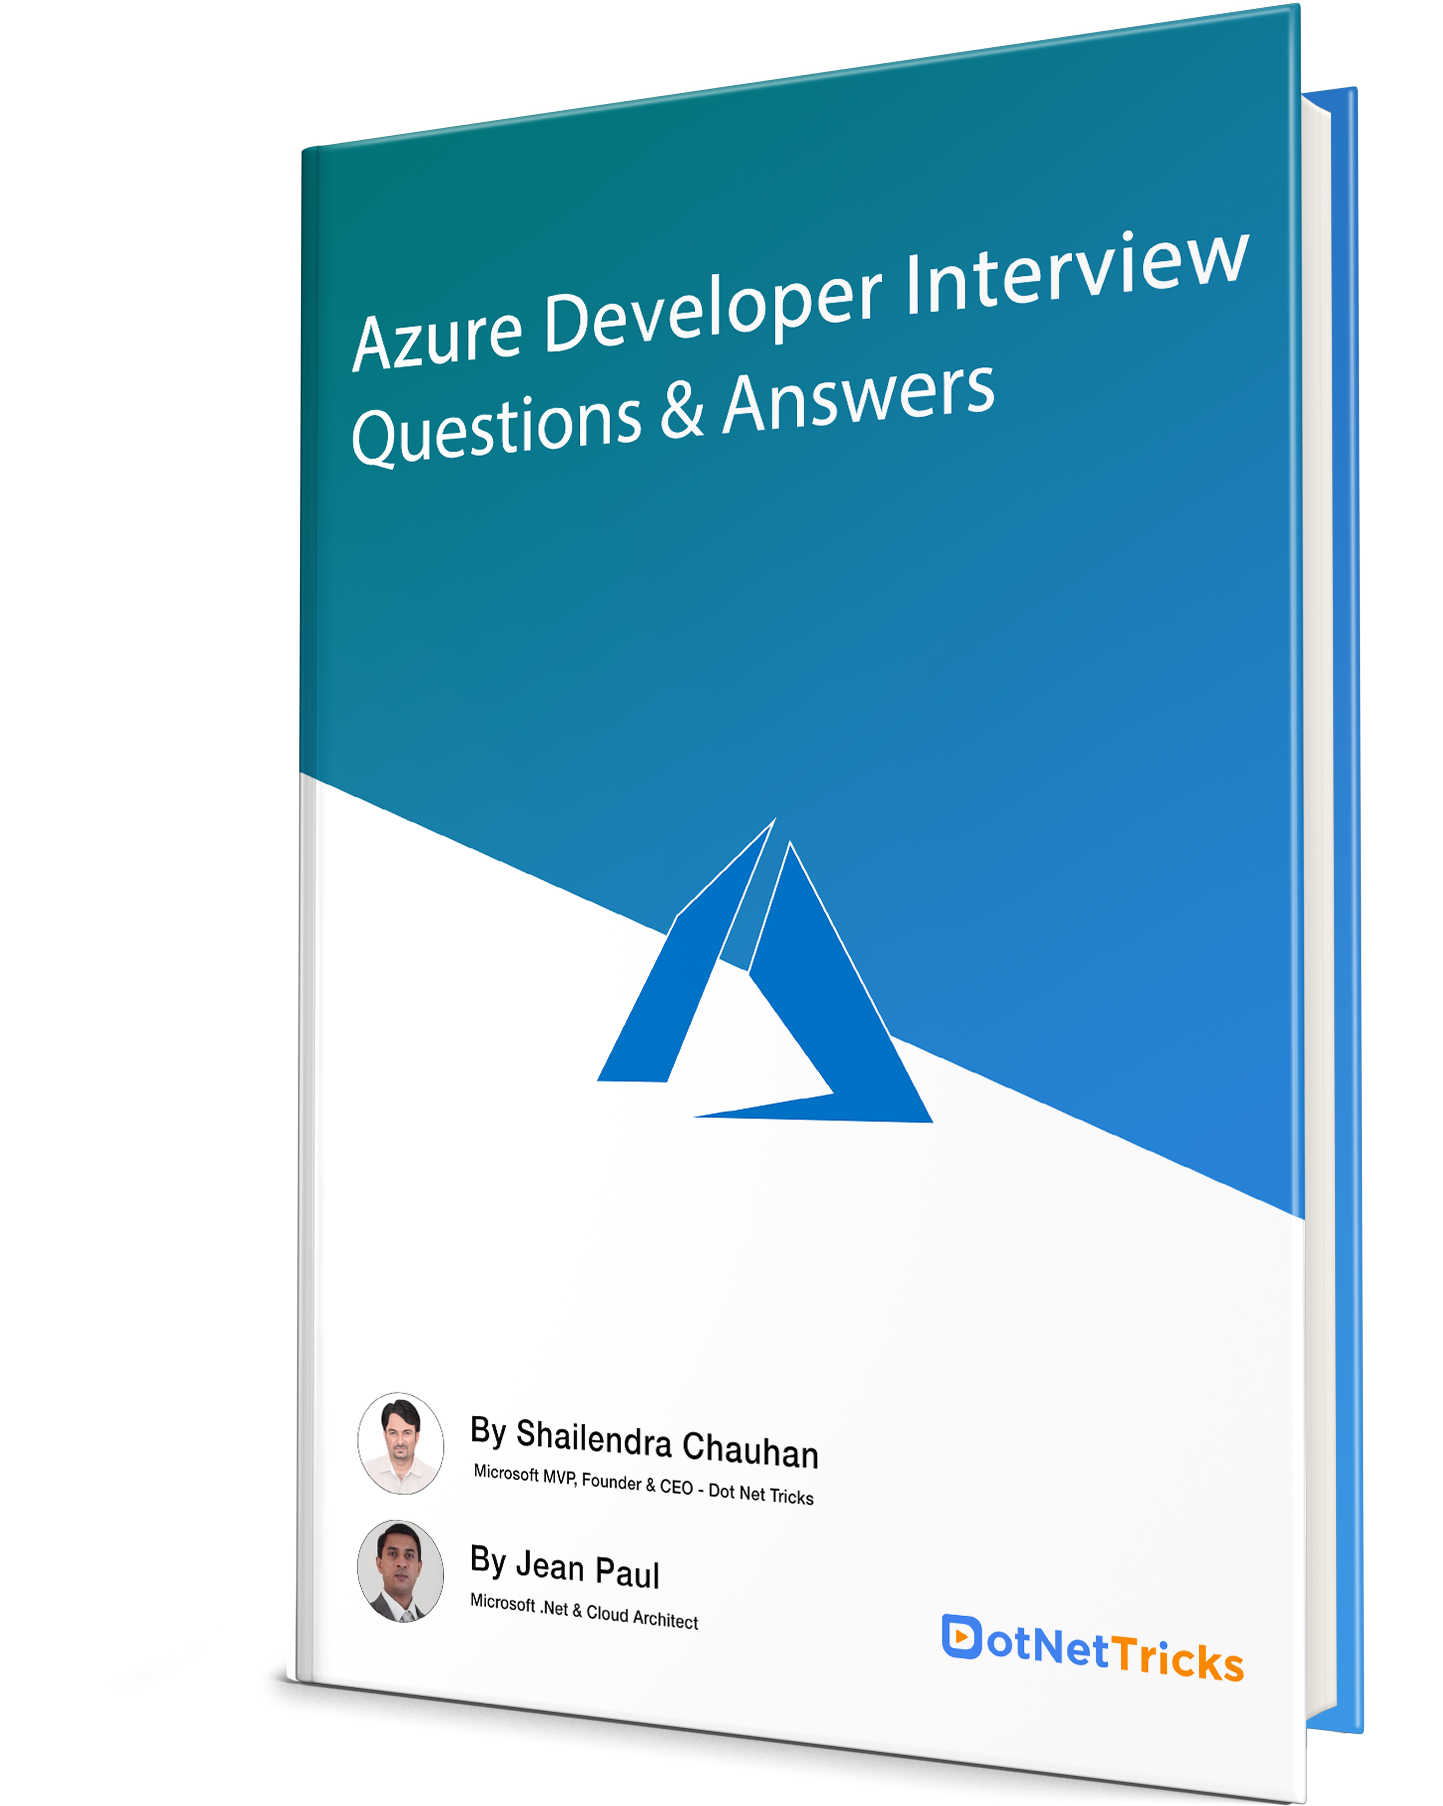 Azure Developer Questions And Answers Ebook Pdf In 2020 This Or That Questions Interview Questions And Answers Cloud Computing Platform